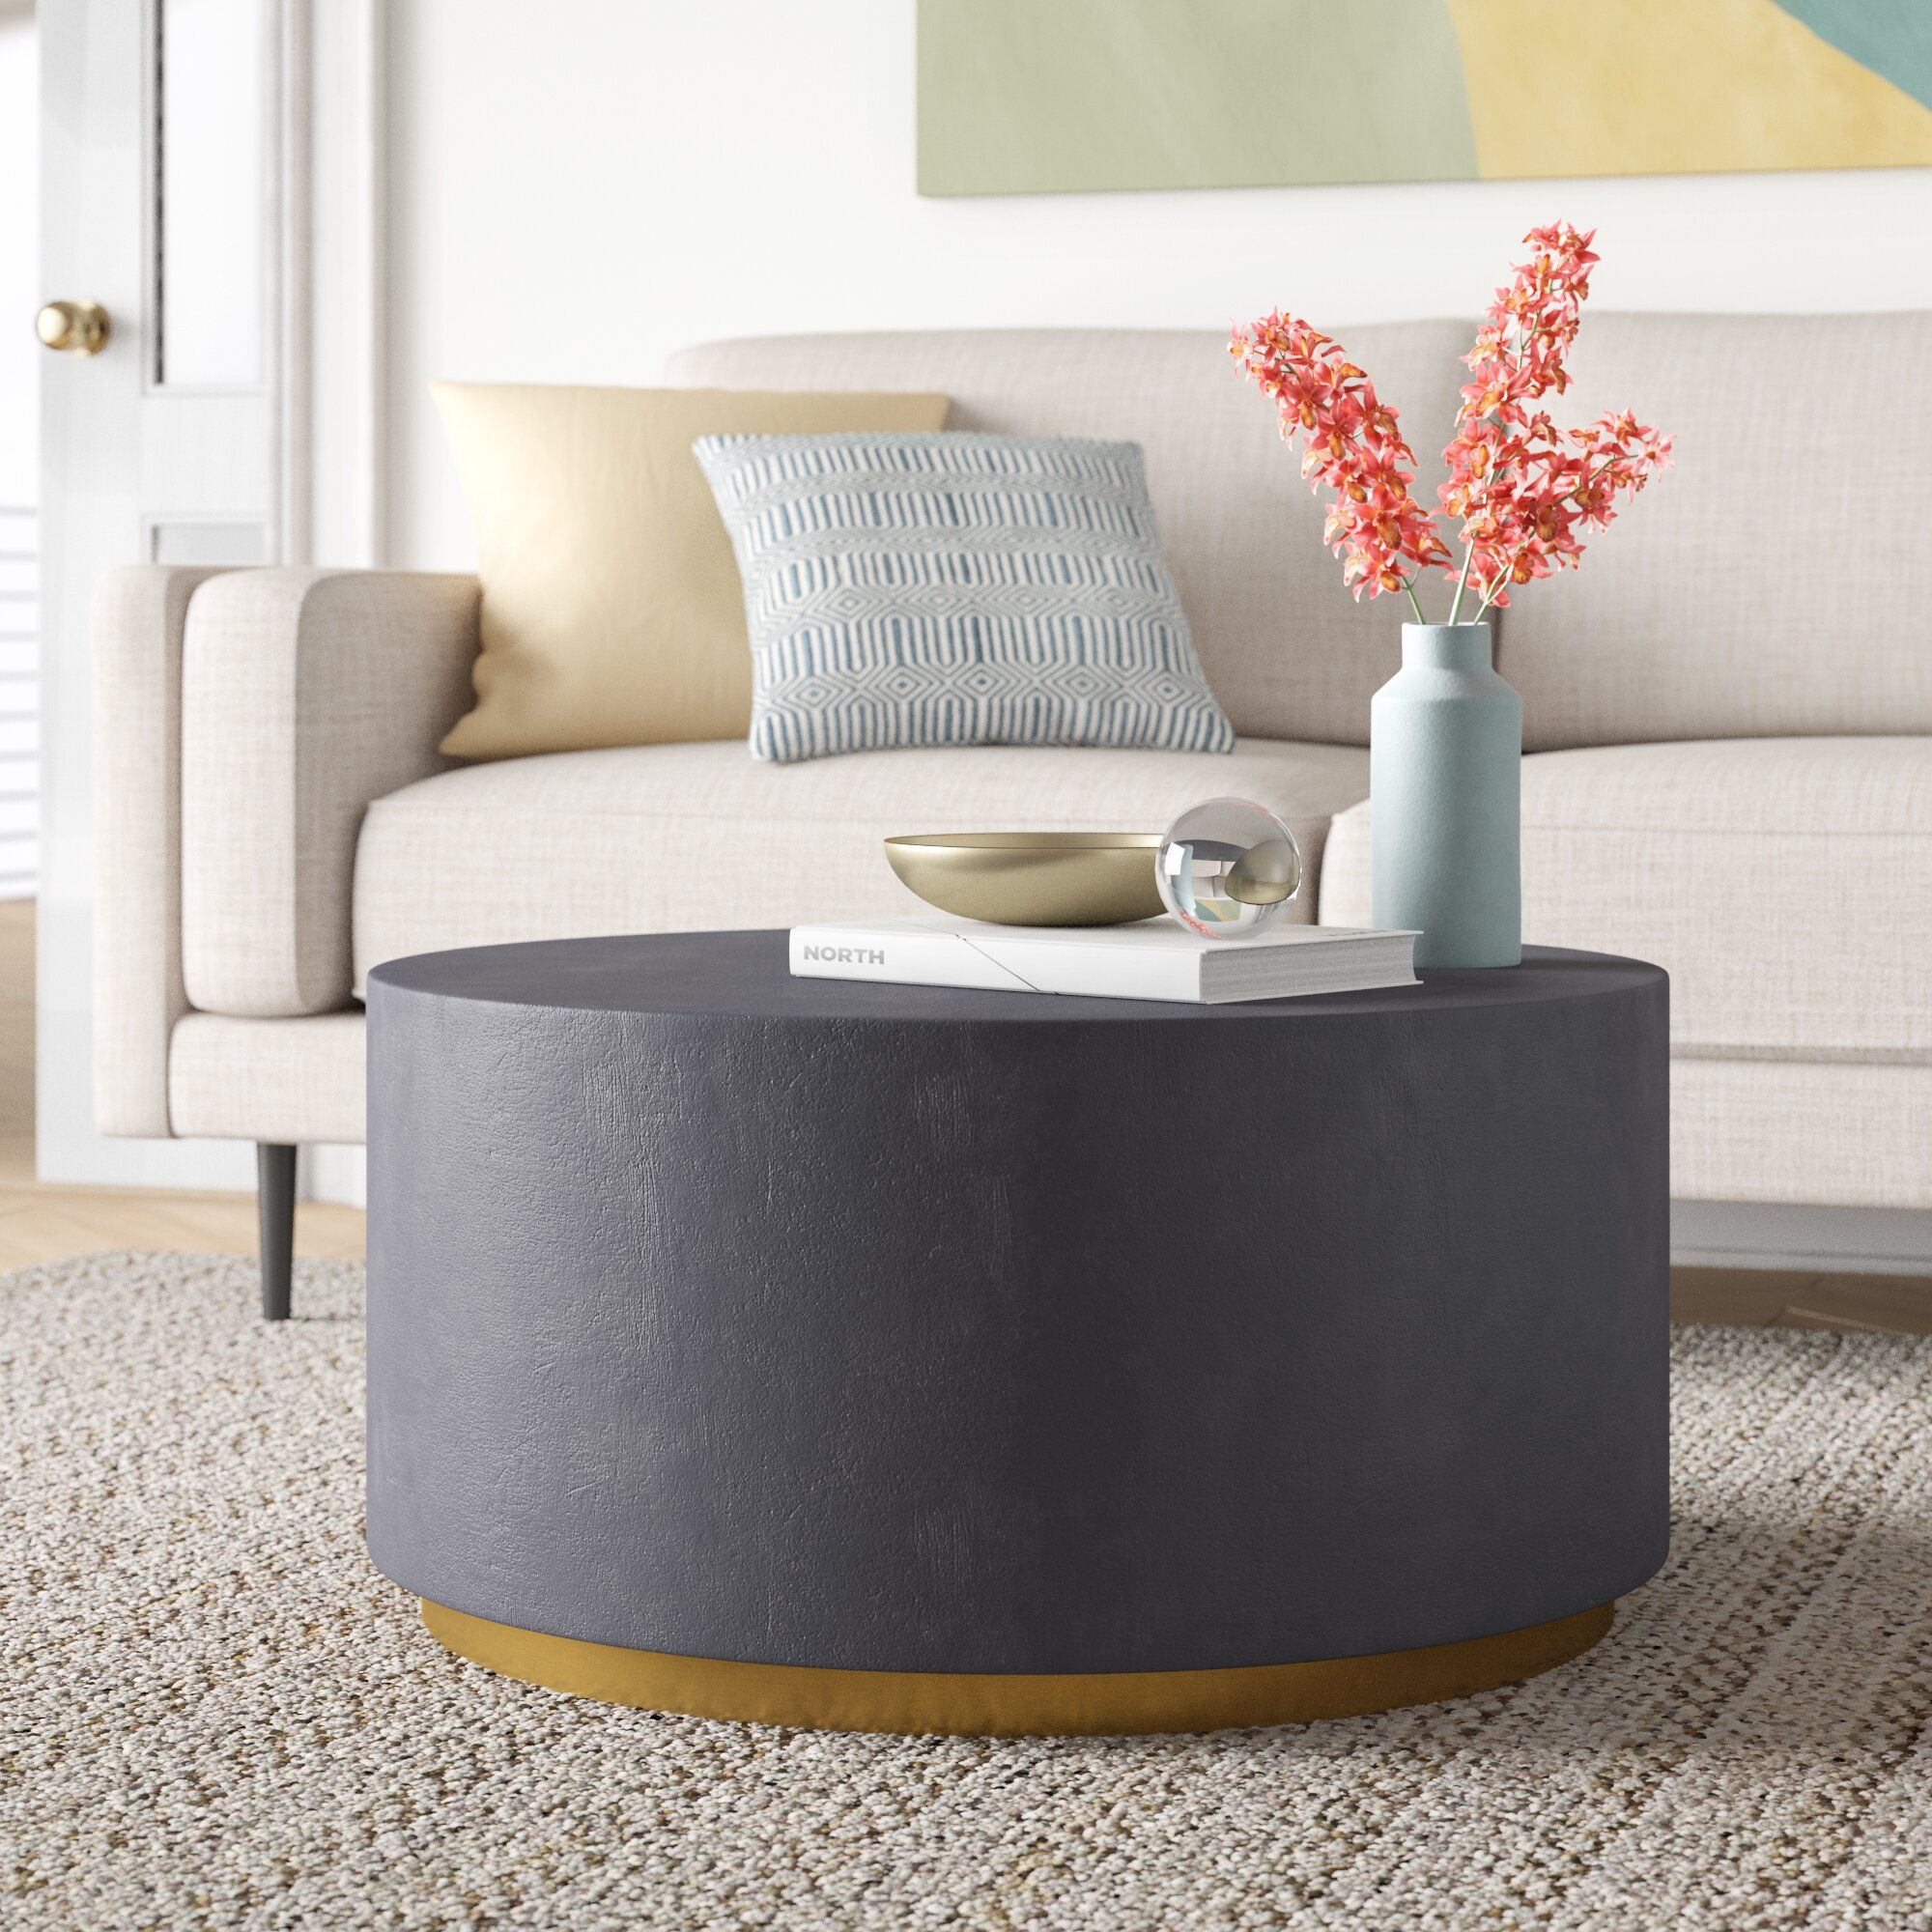 Ailsa Sled Coffee Table In 2021 Drum Coffee Table Coffee Table Coffee Table With Storage [ 2000 x 2000 Pixel ]